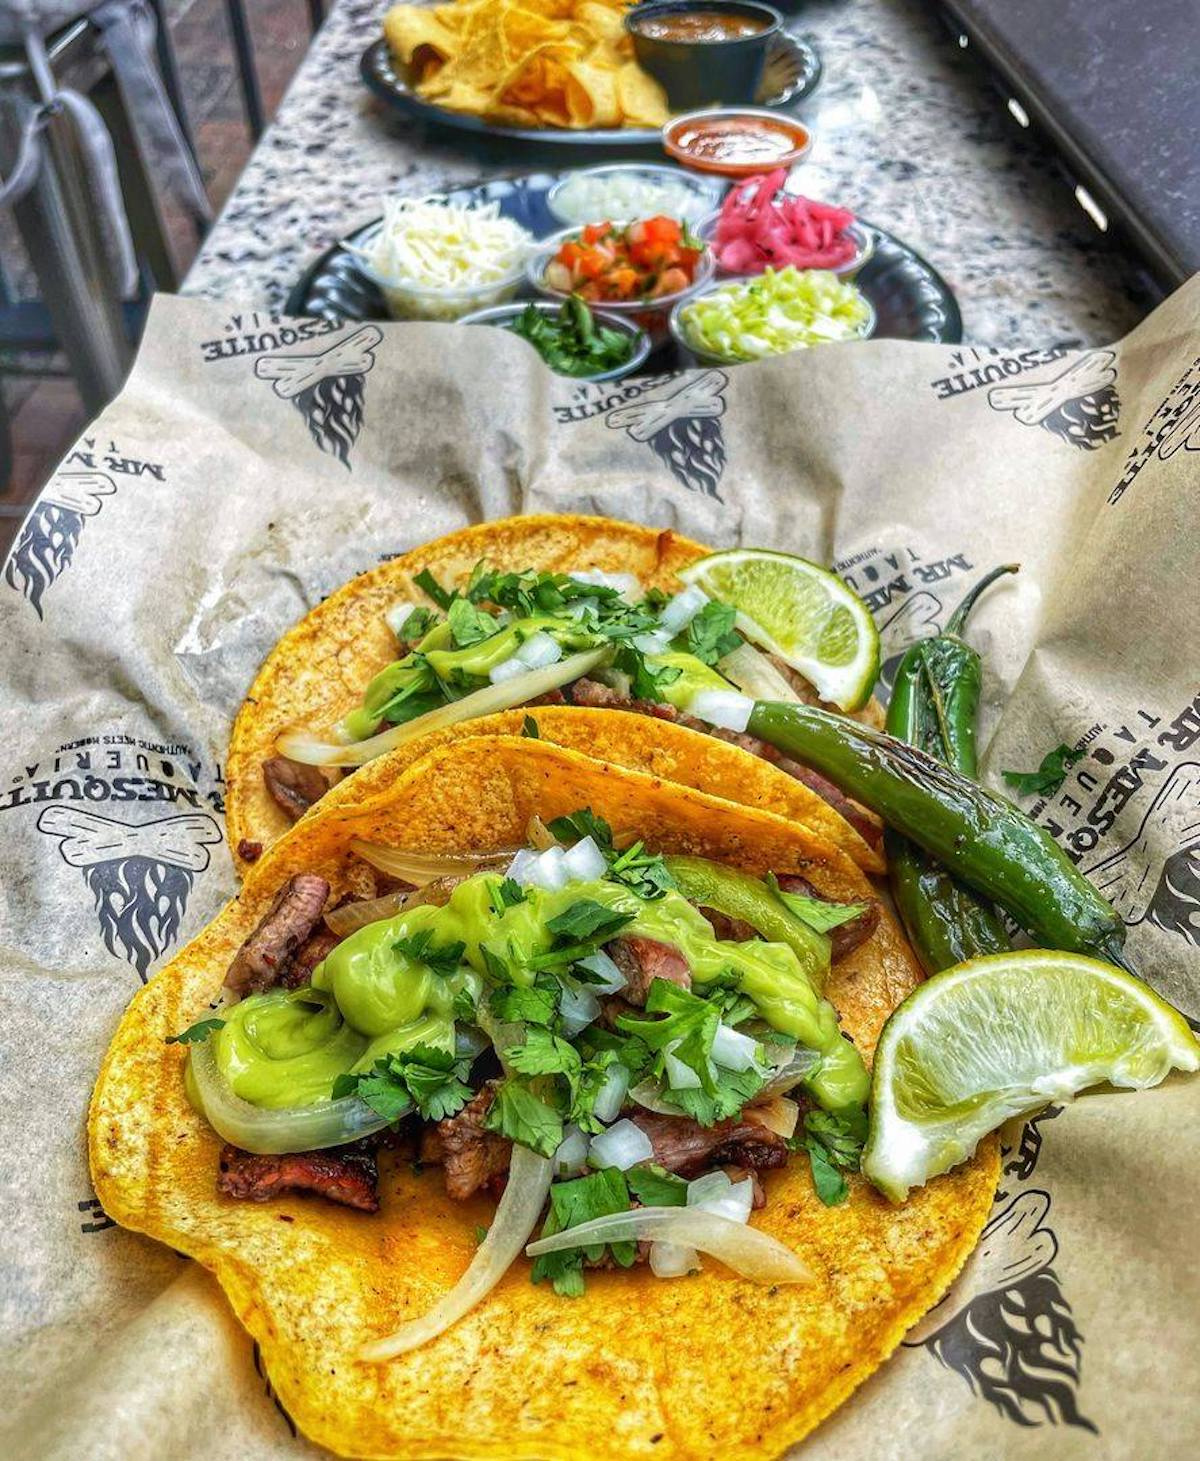 Eighth Mesquite Fresh Street Mex Brick-and-Mortar to Open in North Phoenix